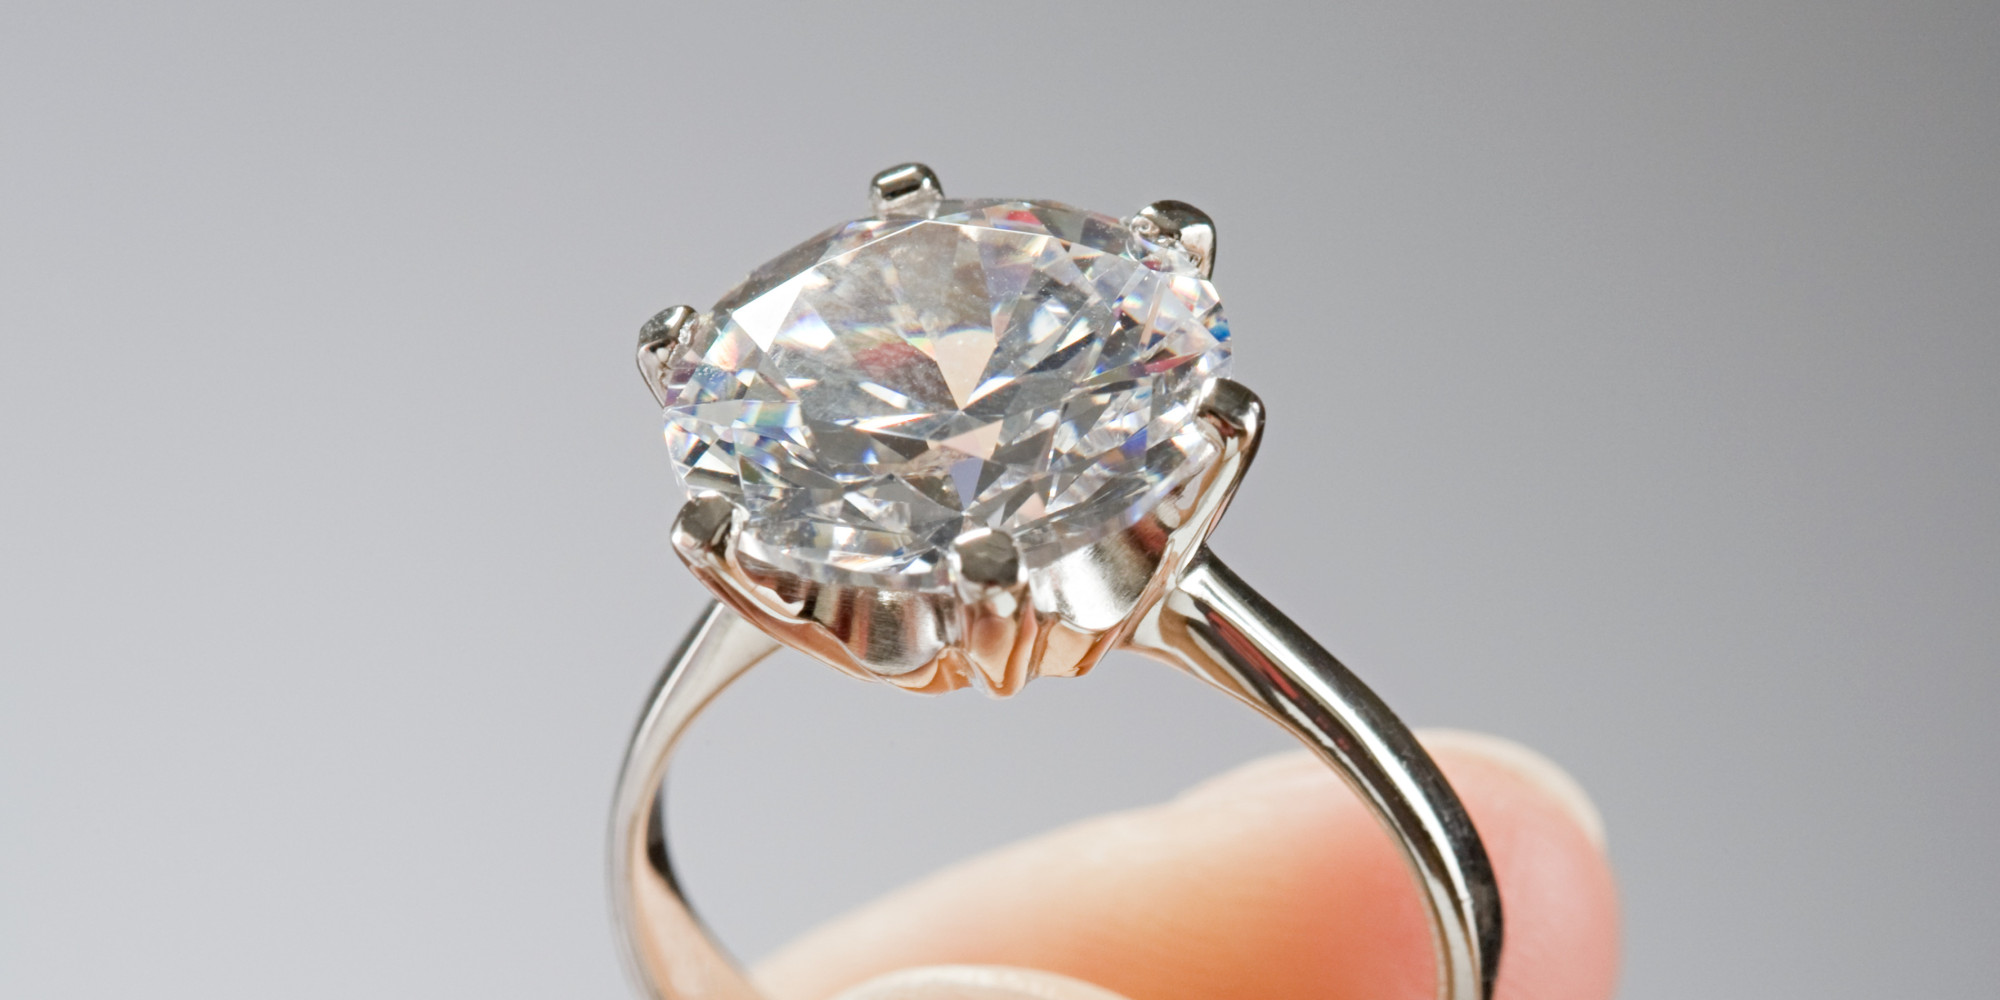 Your Engagement Ring Belongs on Your Left Ring Finger Not in Your